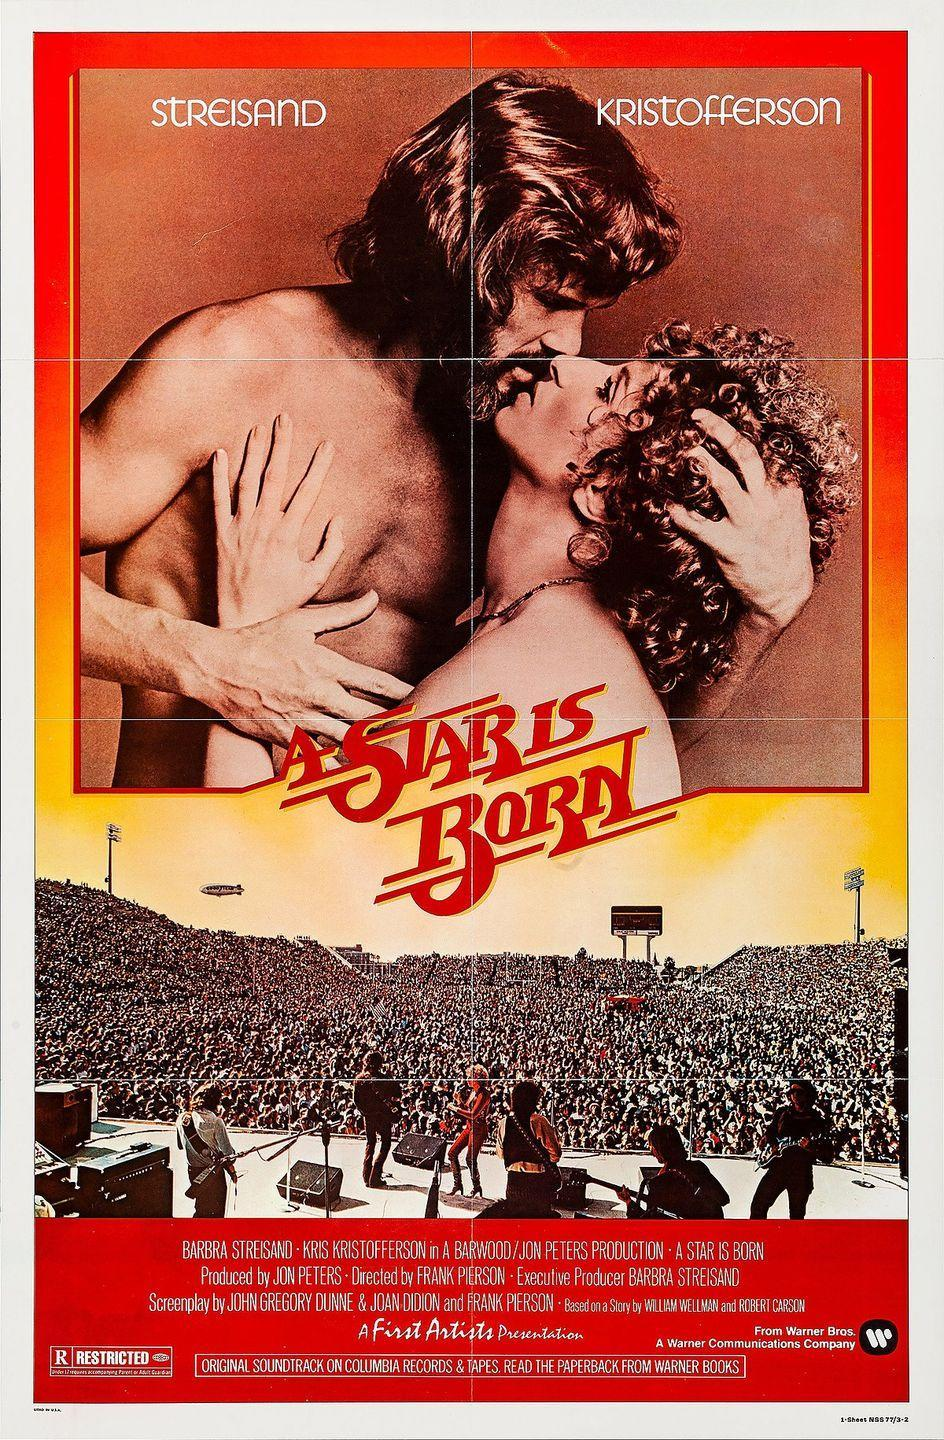 "<p>Each version of <em>A Star is Born </em>has its merits and could easily make this list, but we'll go with the 1976 freewheeling folk take starring Barbra Streisand and Kris Kristofferson. The soundtrack, which shows off Streisand's pop star bona fides, is buoyed by songs like the Academy Award-winning <a href=""https://www.youtube.com/watch?v=X-Ro7baEa6w"" rel=""nofollow noopener"" target=""_blank"" data-ylk=""slk:&quot;Evergreen&quot;"" class=""link rapid-noclick-resp"">""Evergreen""</a> and the chugging rock duet <a href=""https://www.youtube.com/watch?v=r6Jb2CA_xx8"" rel=""nofollow noopener"" target=""_blank"" data-ylk=""slk:&quot;Watch Closely Now.&quot;"" class=""link rapid-noclick-resp"">""Watch Closely Now.""</a> Whichever version of <em>A Star is Born </em>you opt for, each deserves praise for presenting the darker side of the film and music industry dreams.</p><p><a class=""link rapid-noclick-resp"" href=""https://www.amazon.com/Star-Born-Barbra-Streisand/dp/B0036UMM84?tag=syn-yahoo-20&ascsubtag=%5Bartid%7C10063.g.34344525%5Bsrc%7Cyahoo-us"" rel=""nofollow noopener"" target=""_blank"" data-ylk=""slk:WATCH NOW"">WATCH NOW</a></p>"